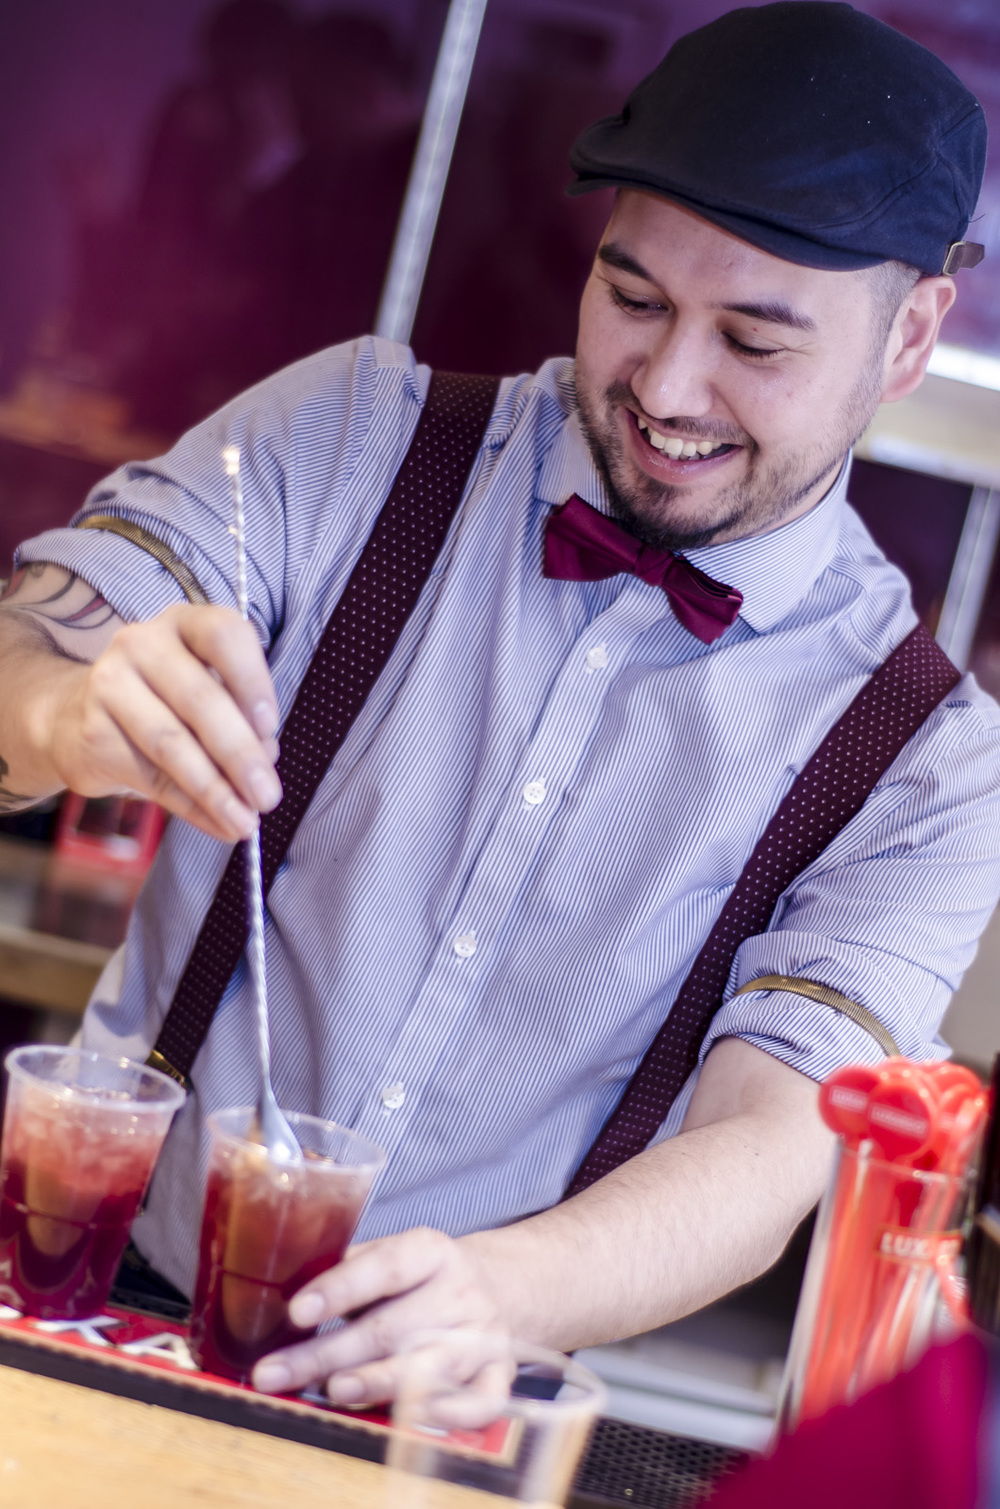 The talented Mister G, mixing and serving The Dosoco Cherry Dowser at the gig. Photo credit: Mike Oliver